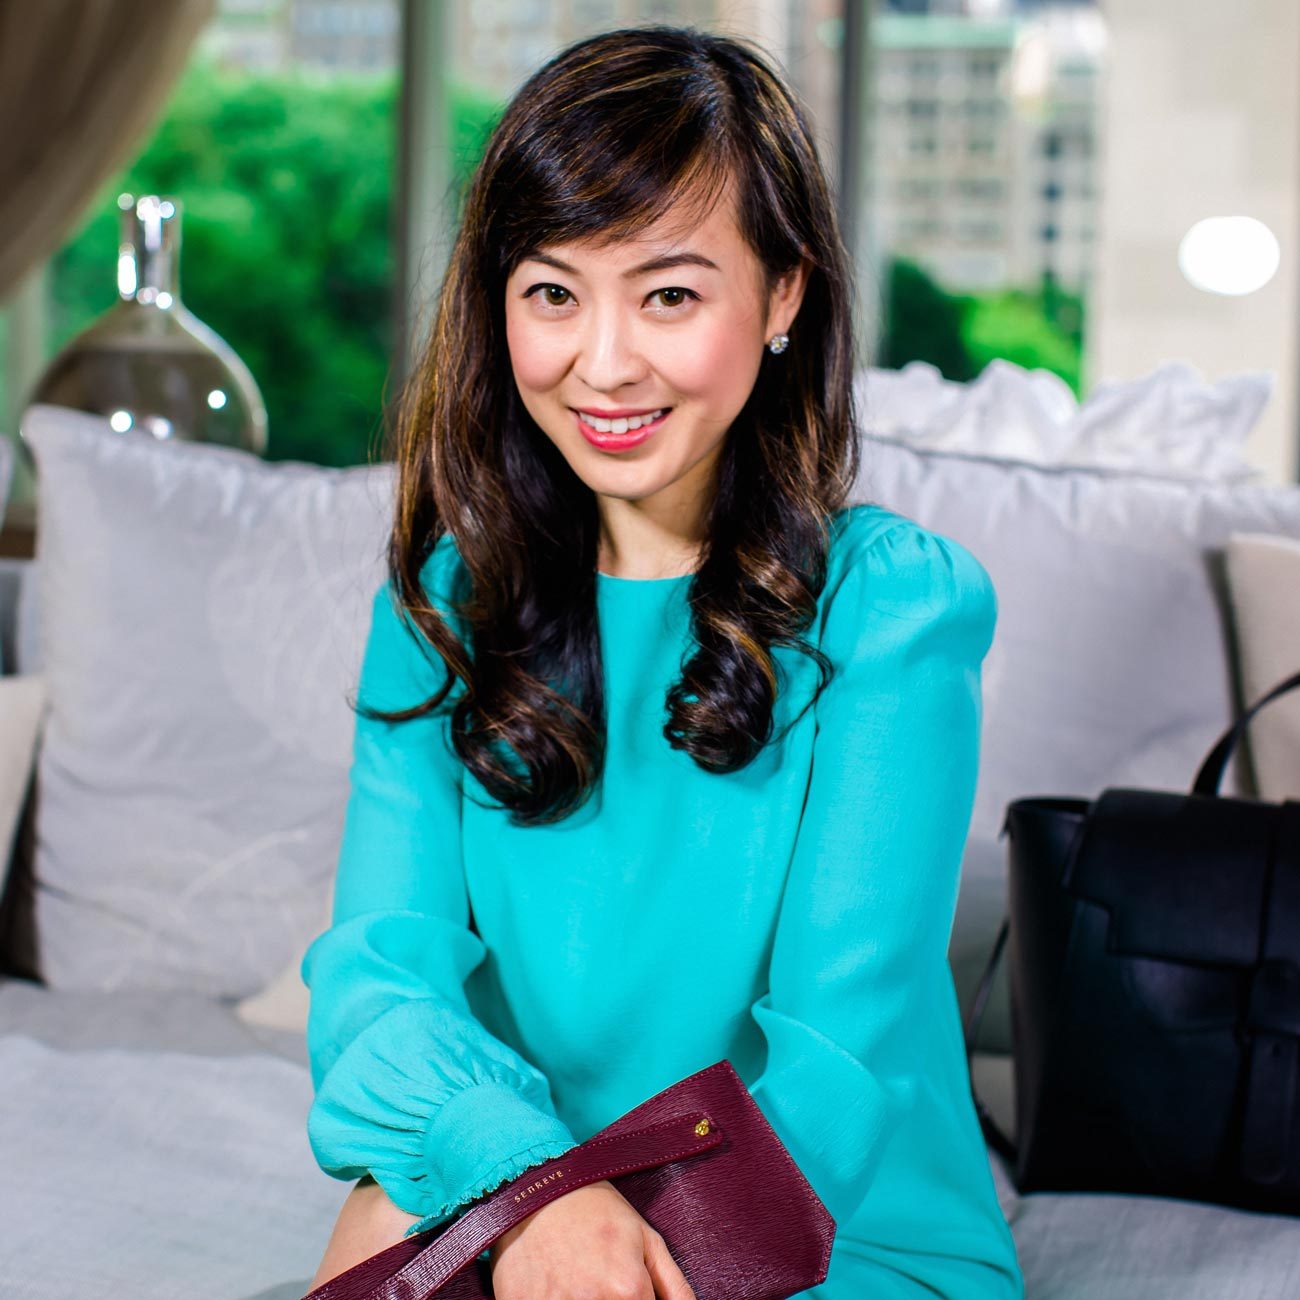 Senreve co-founder Coral Chung